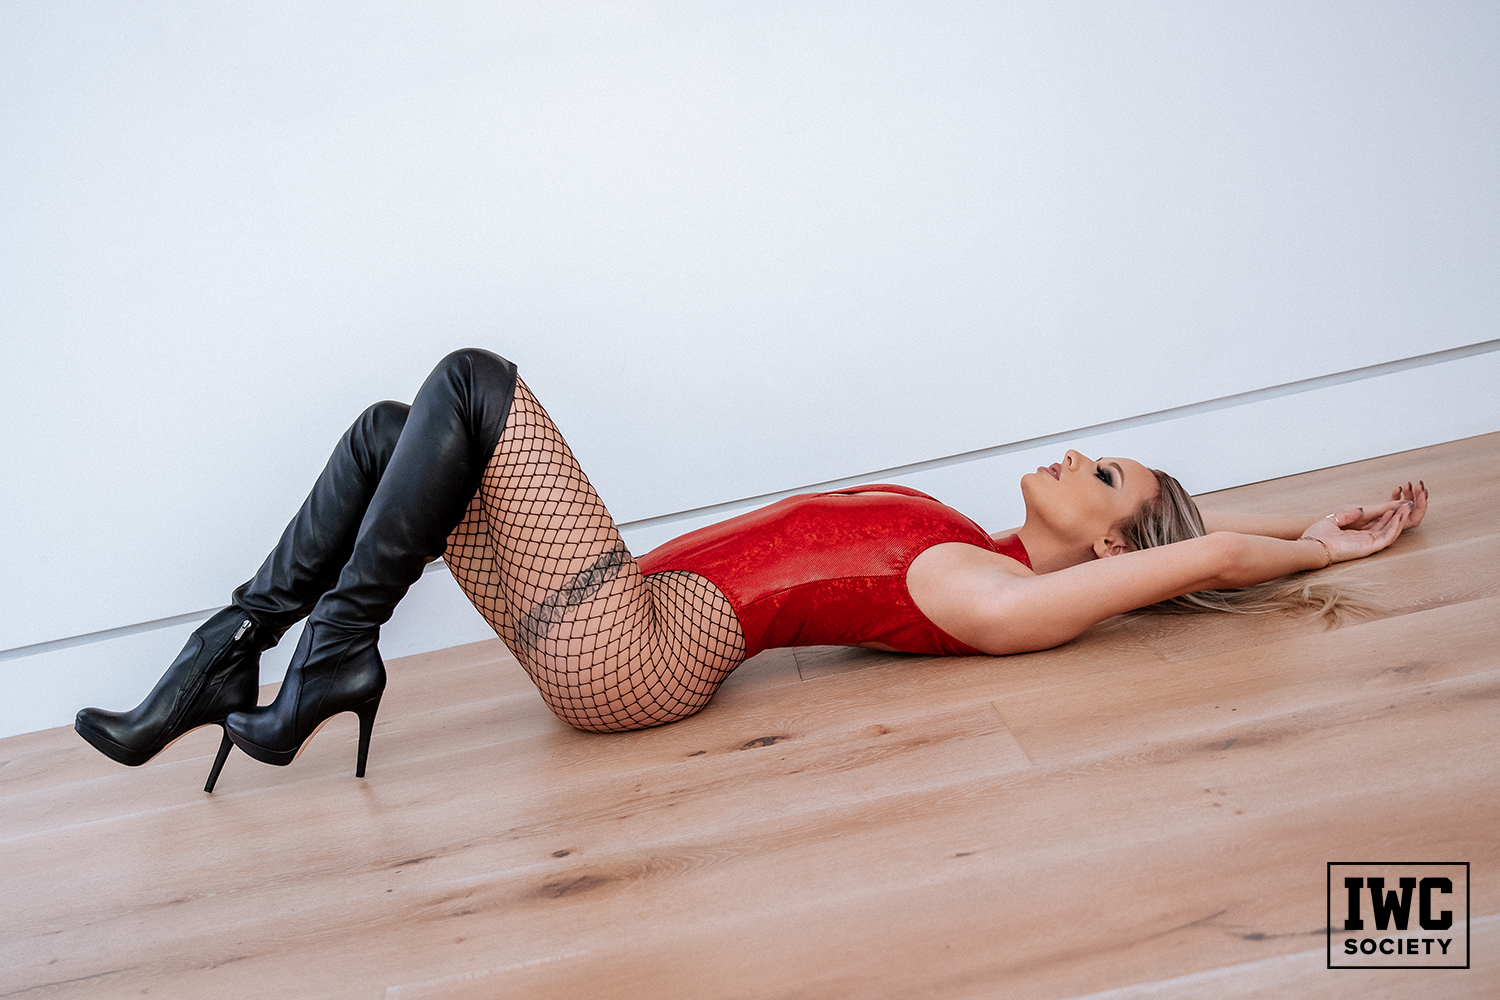 spoiled domme laying down and showing off her curvy body in a shiny metallic red bodysuit